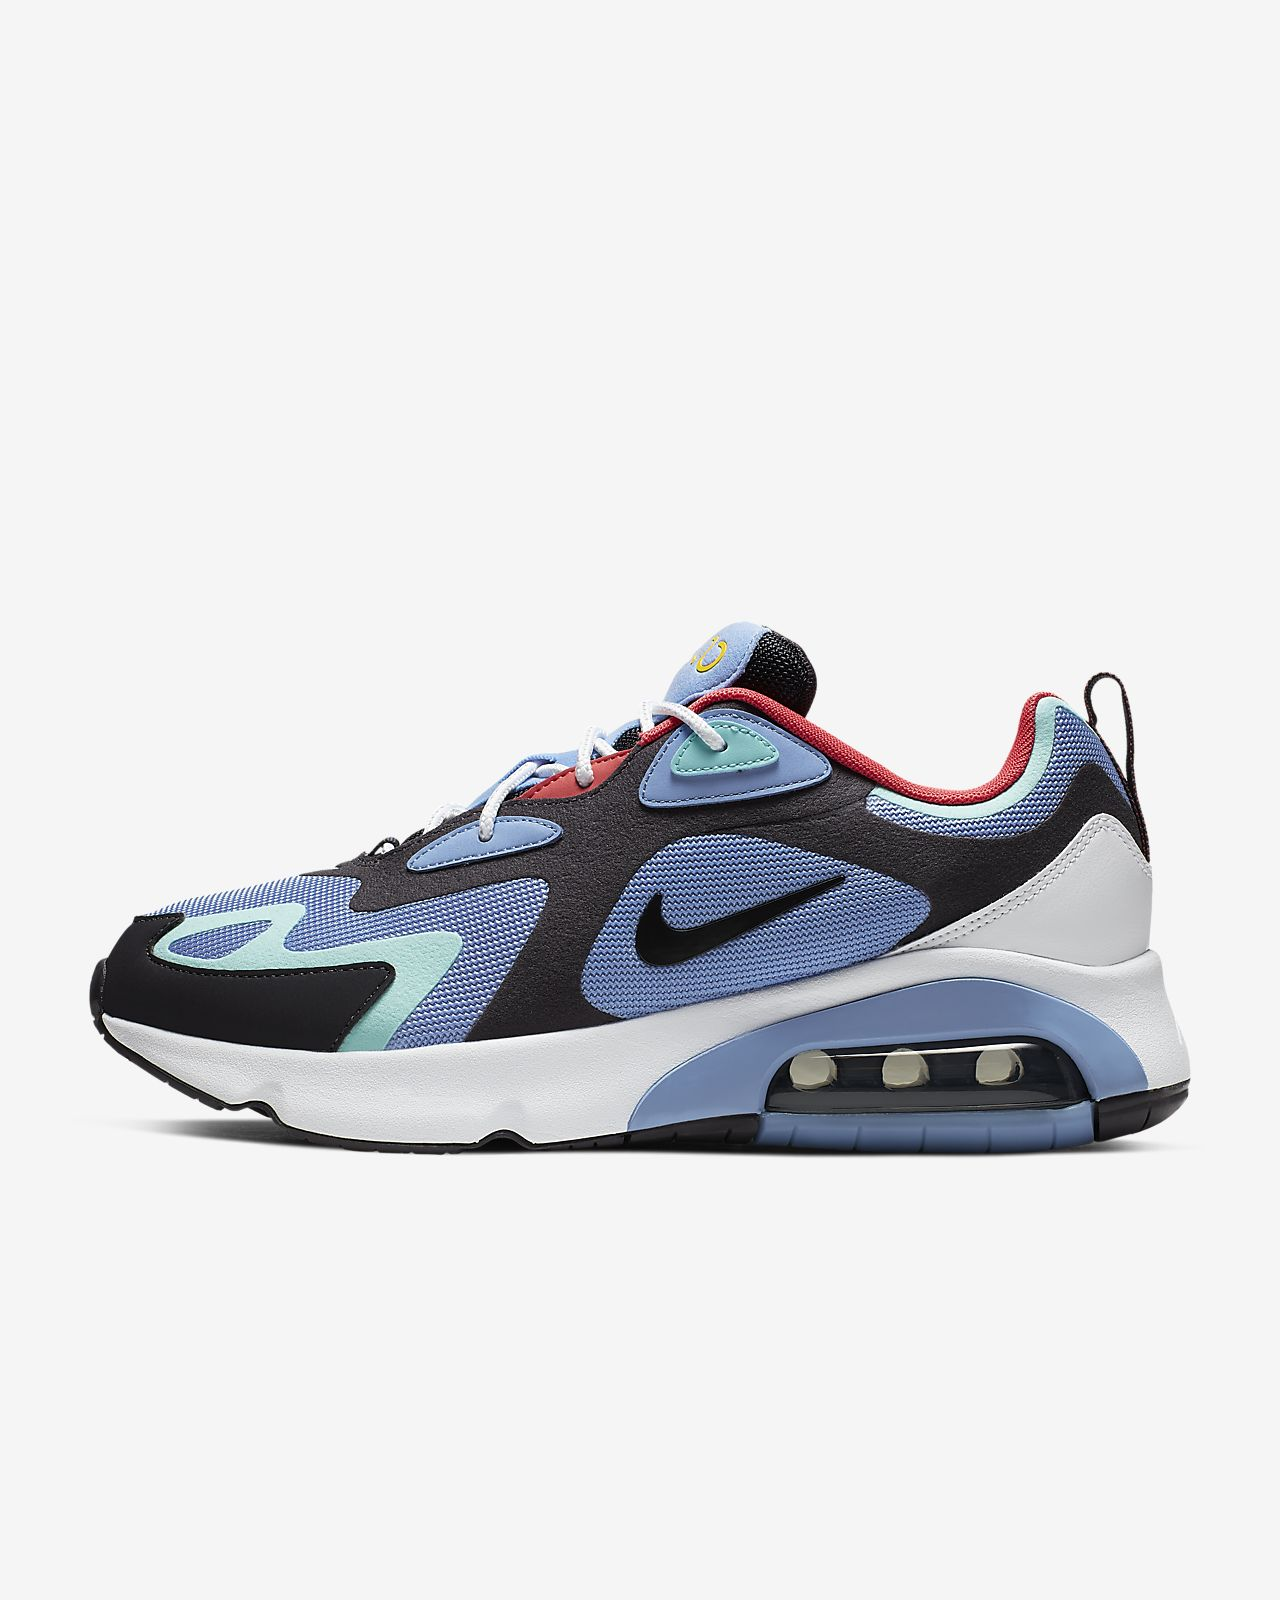 Nike Air Max 200 (1992 World Stage) Herenschoen